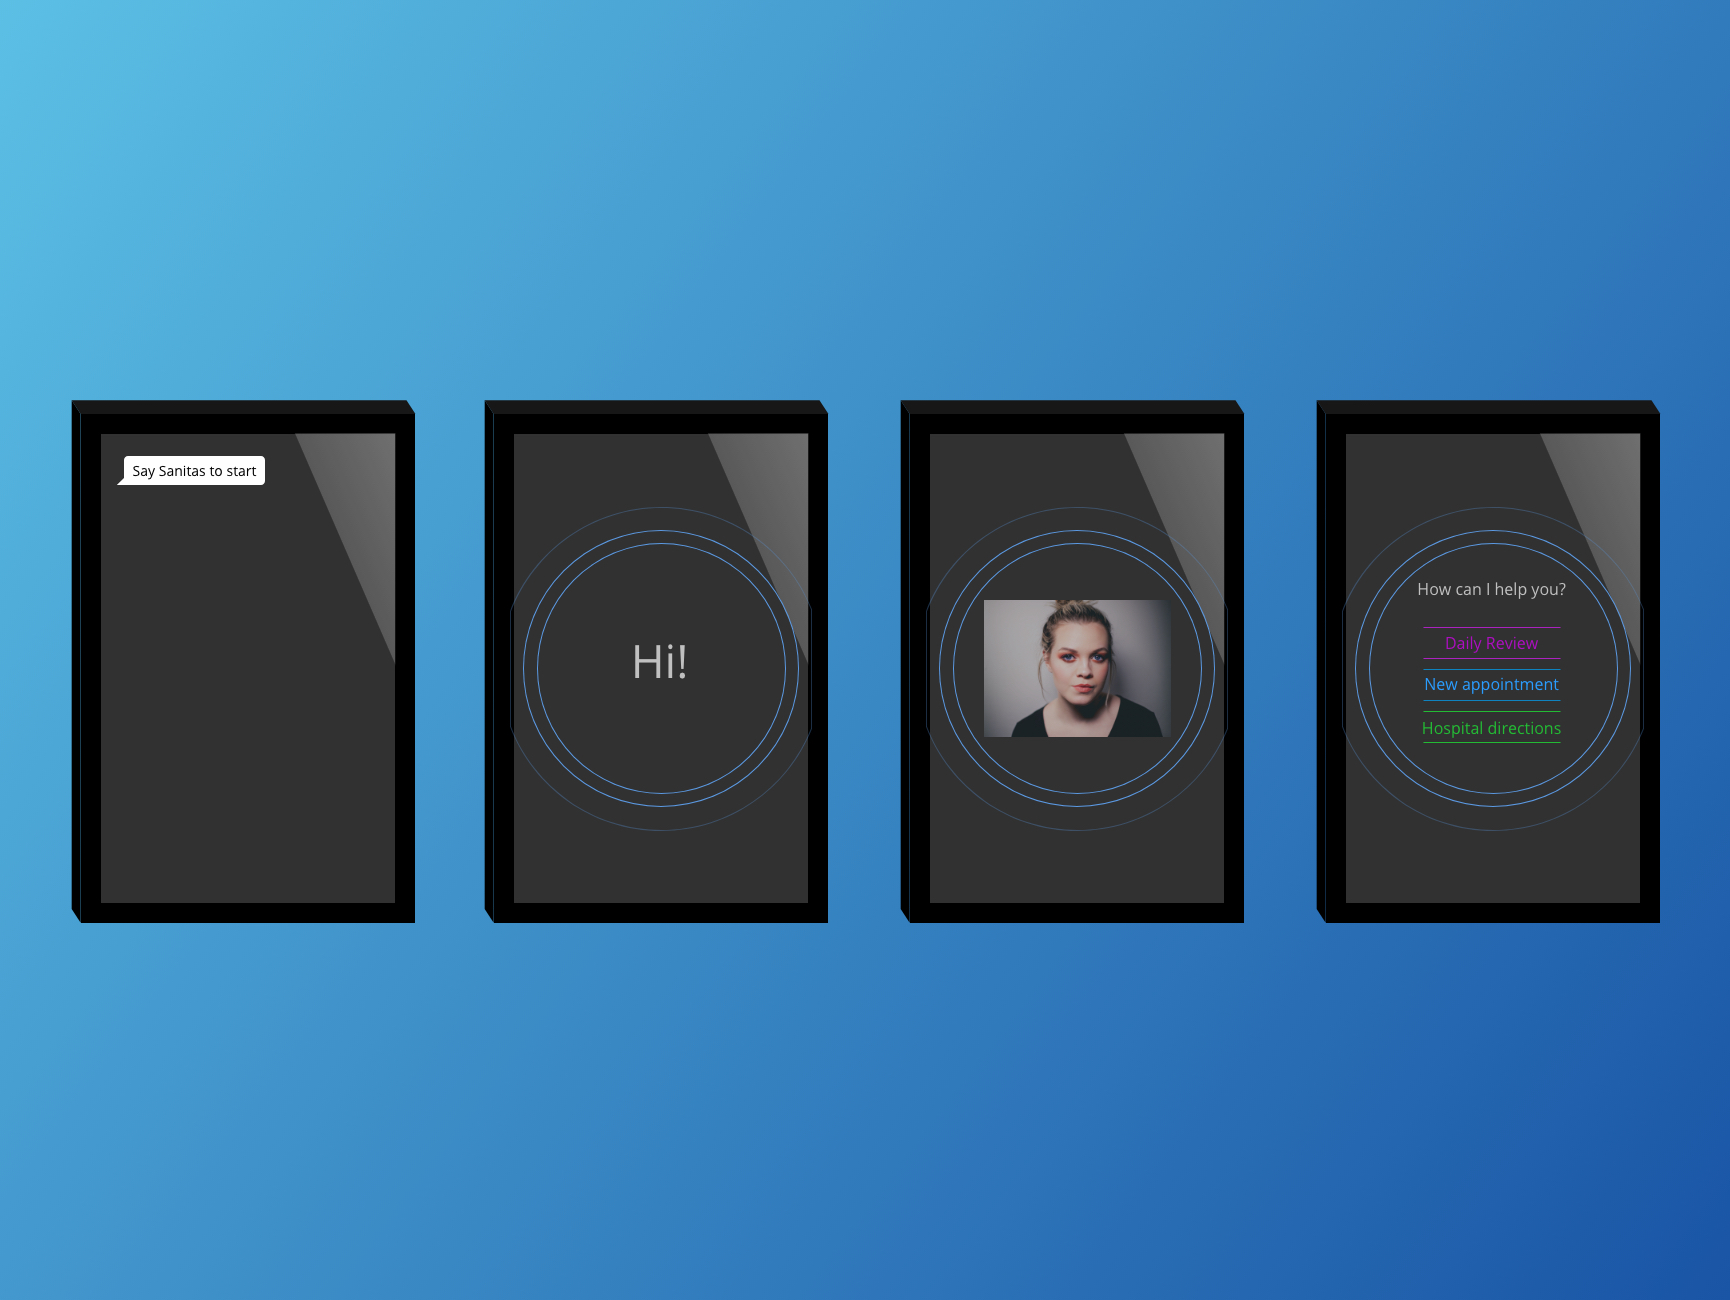 4 different views of the Smart Mirror